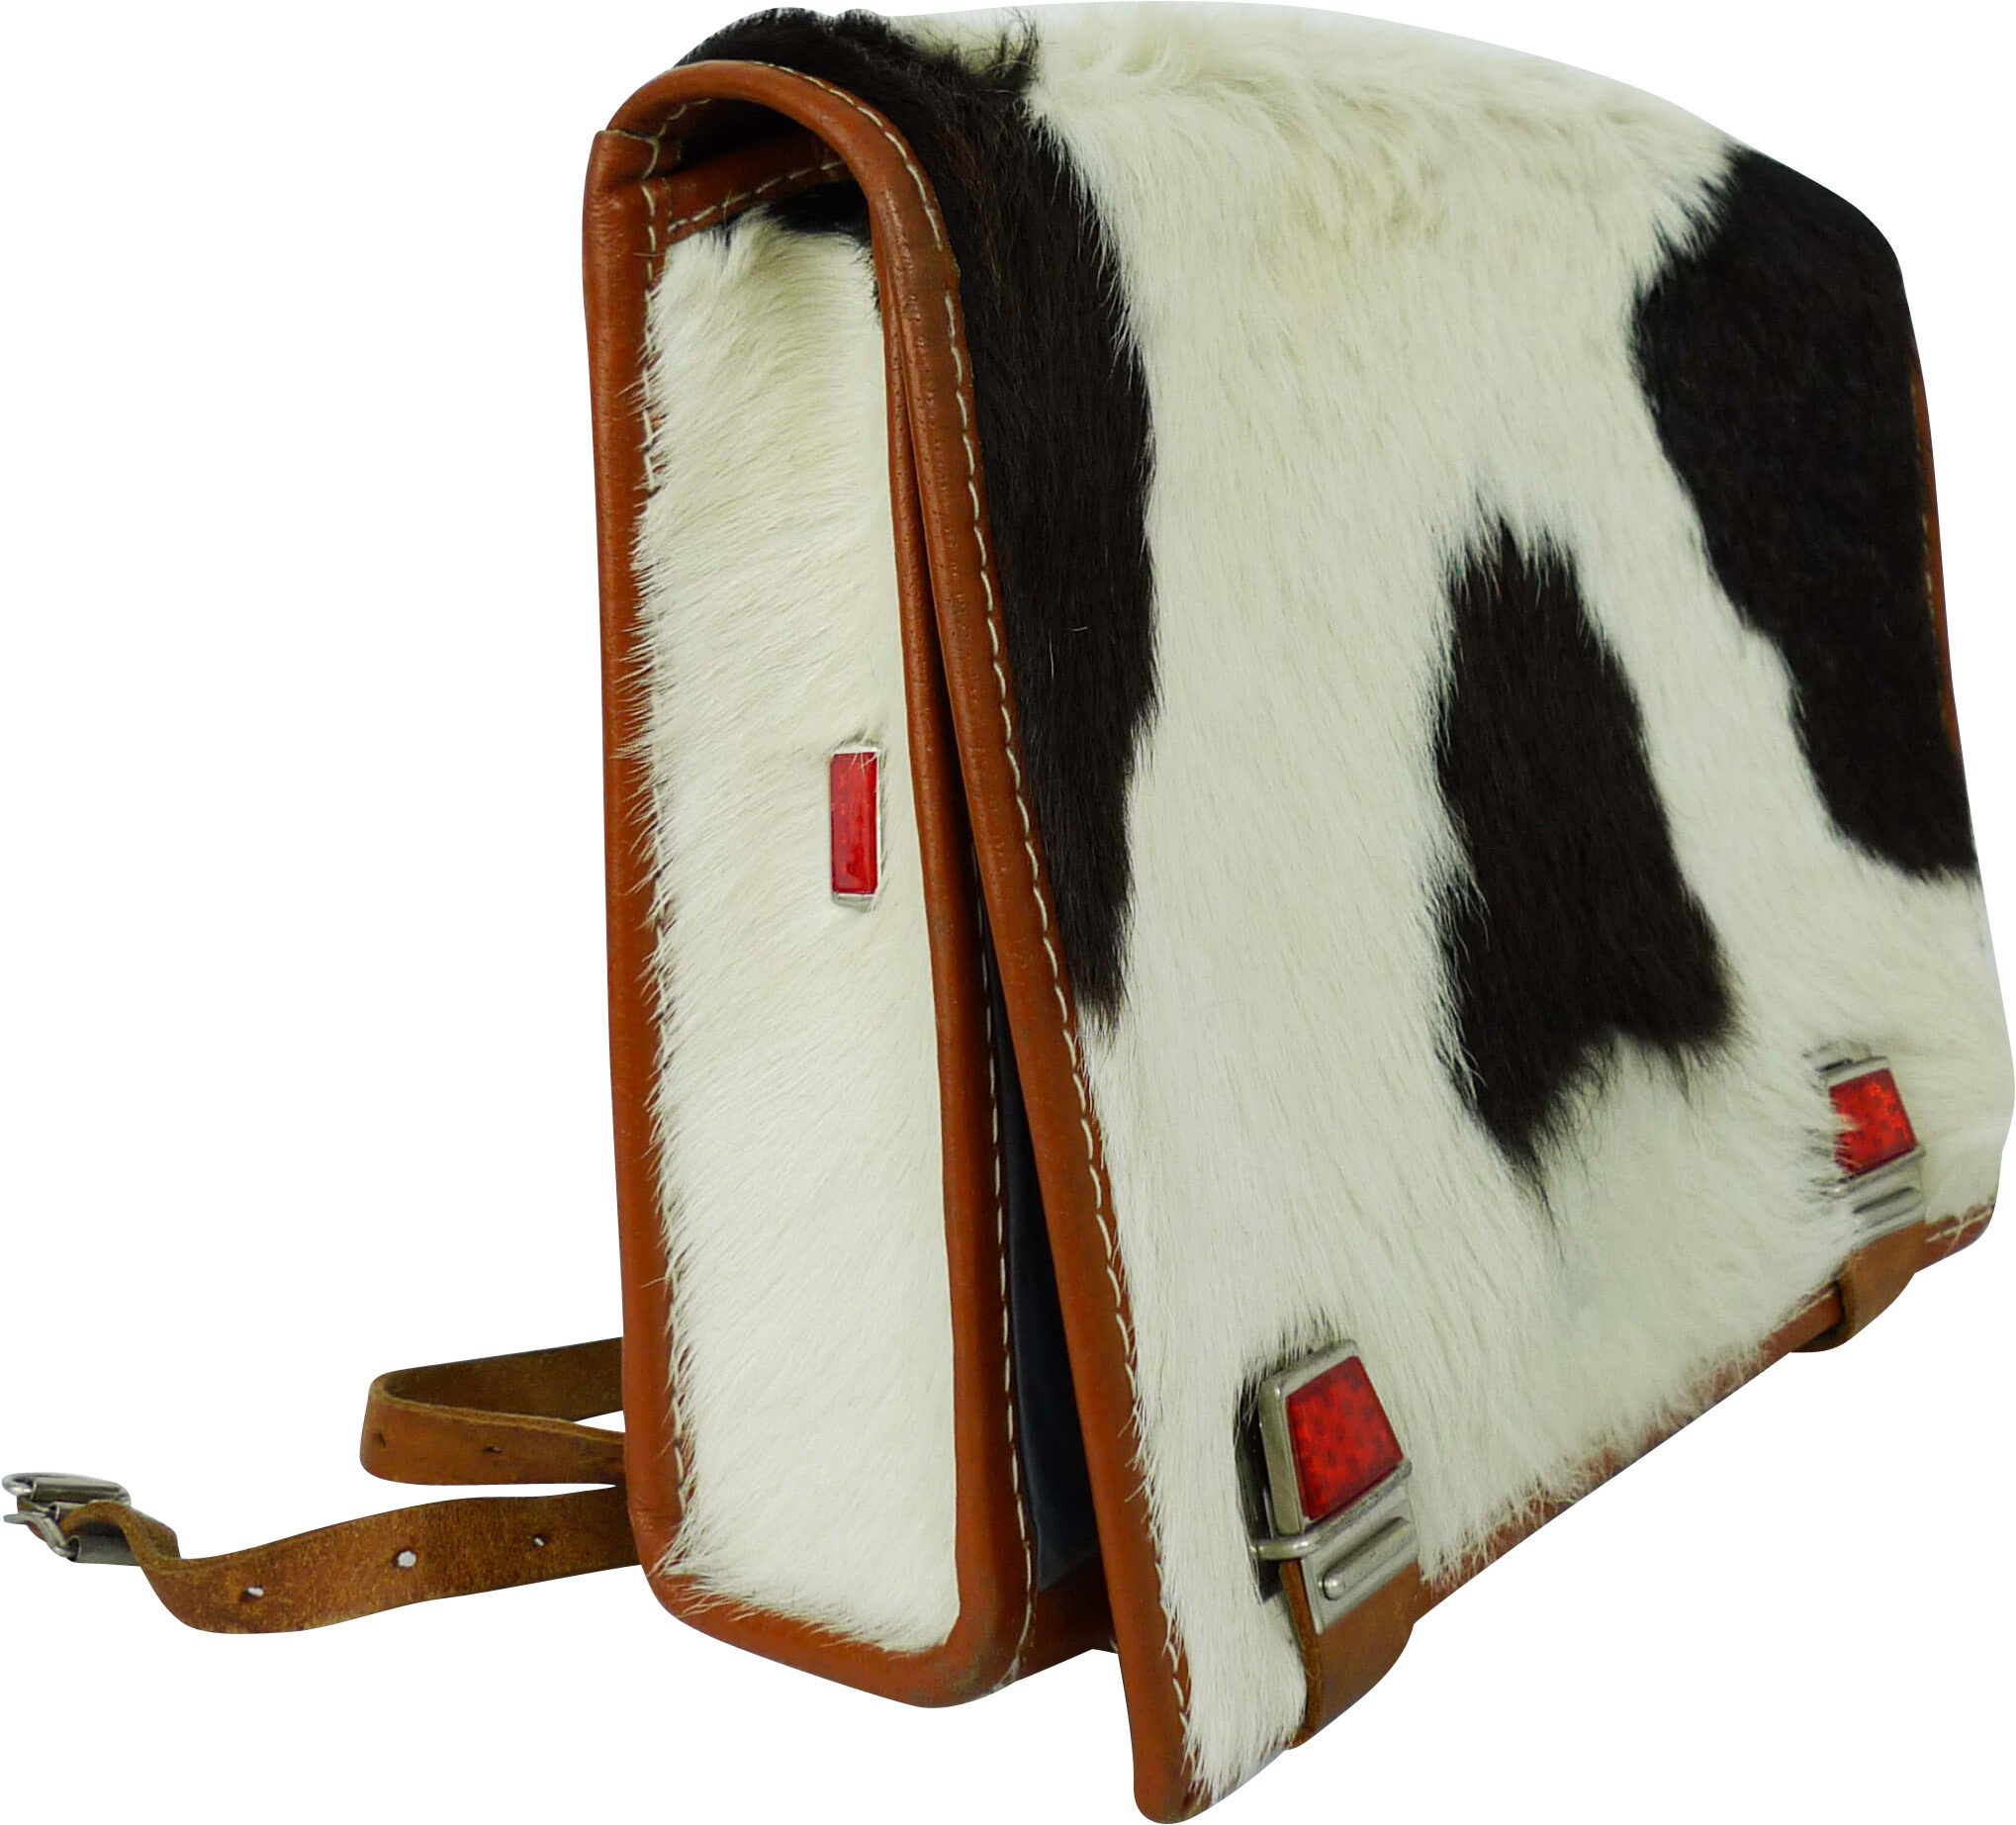 Backpack, Switzerland, 1960s